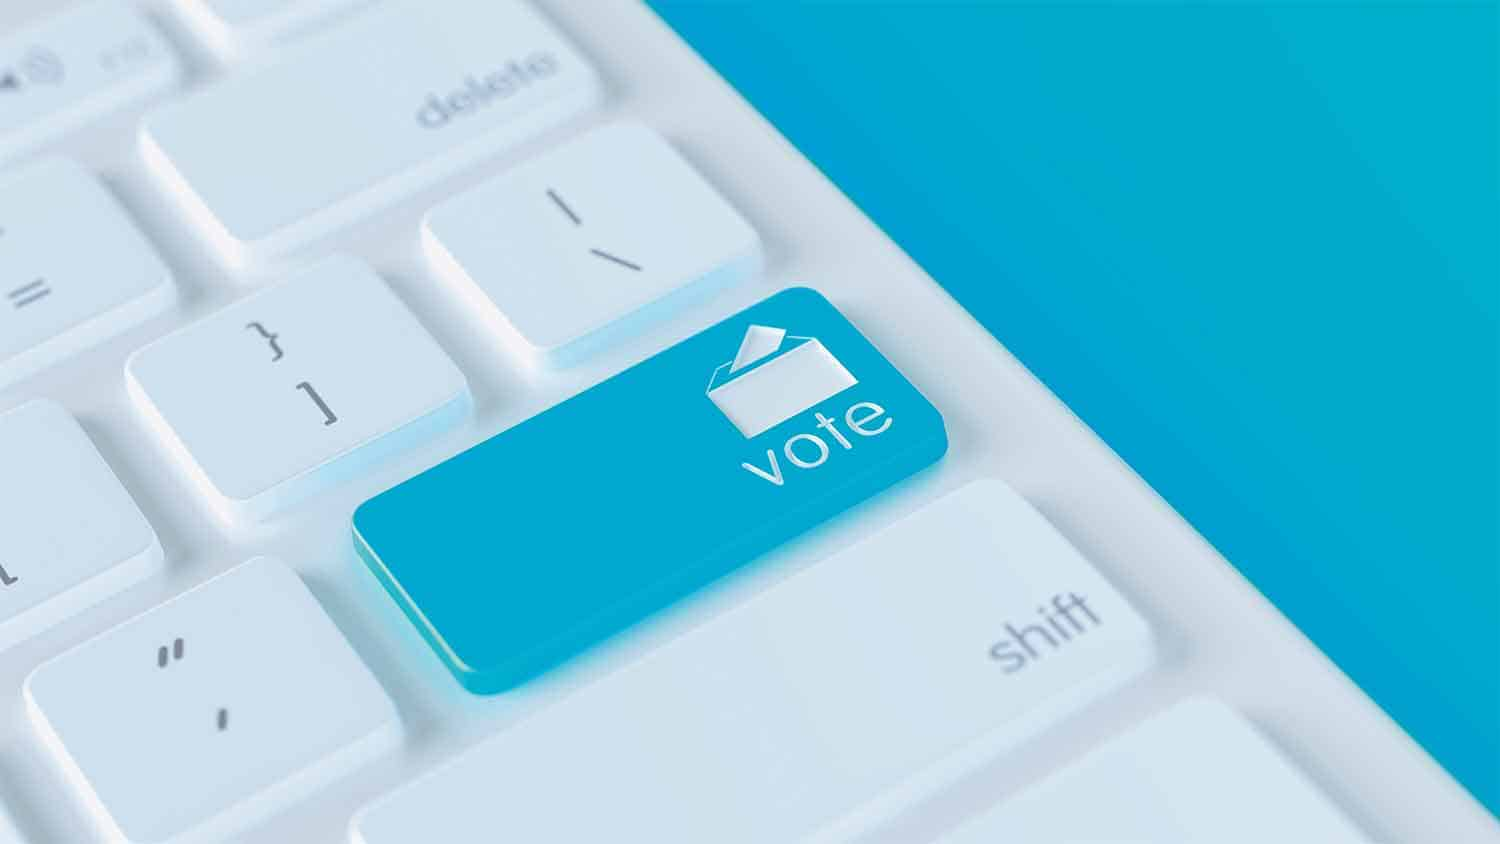 Vote button on a keyboard